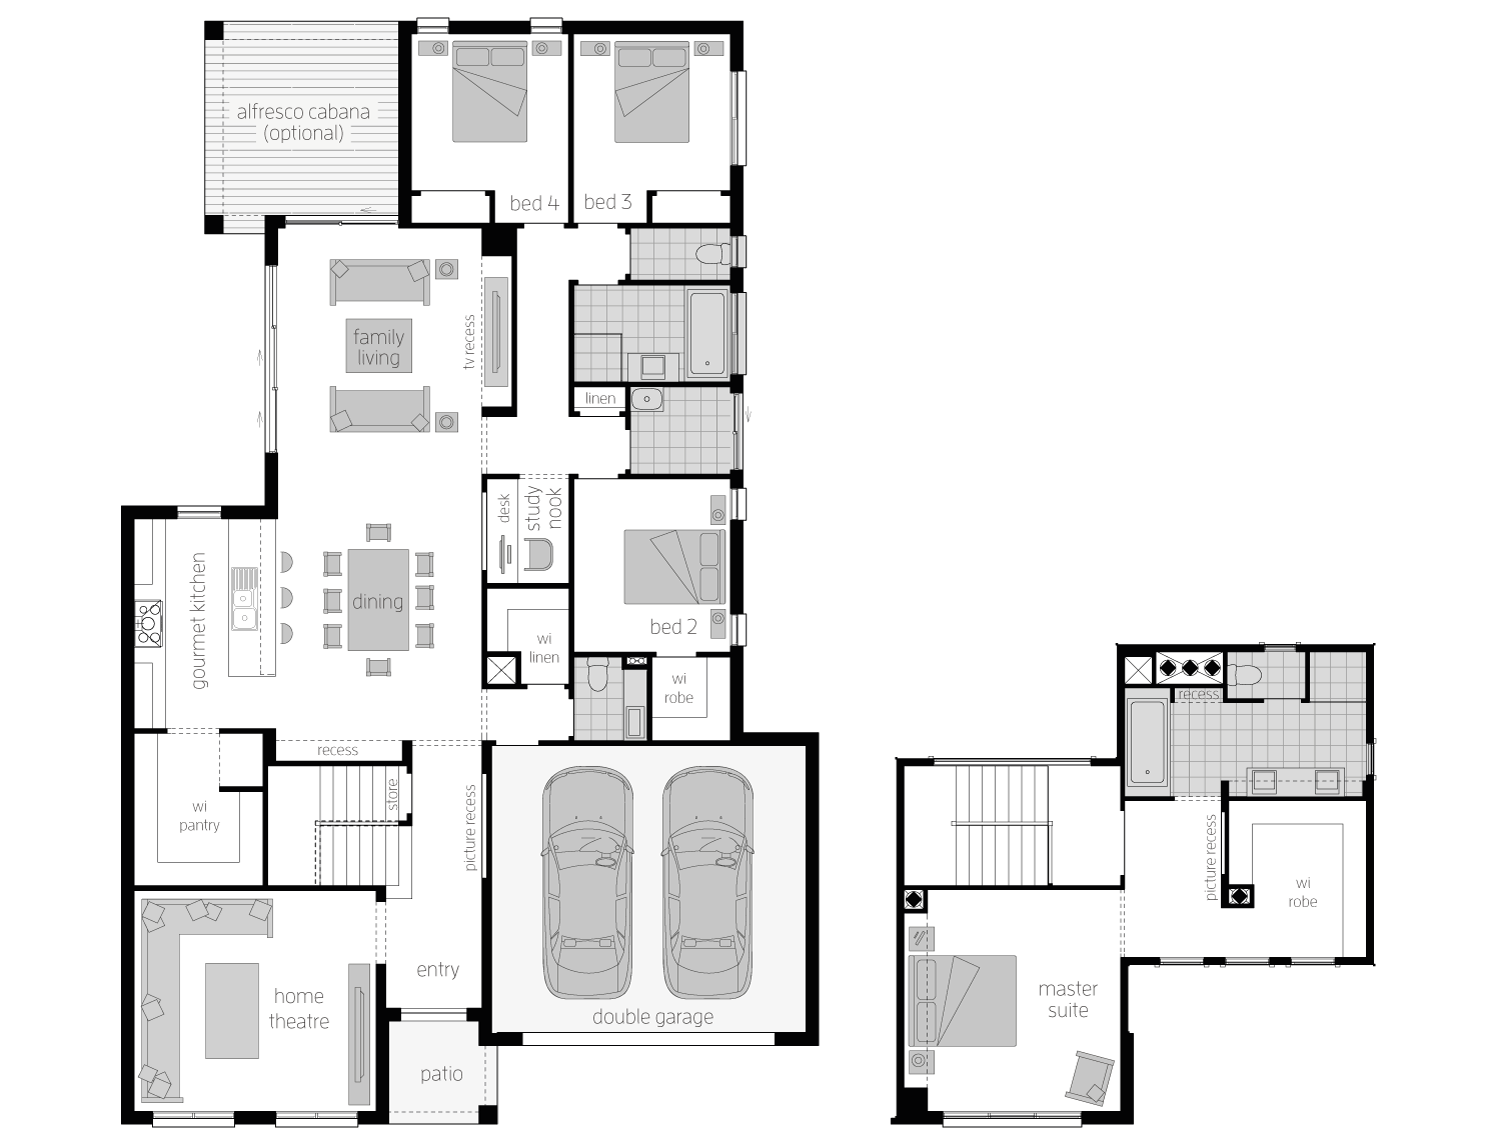 Floor Plan - Ellerston31 - Two Storey Home - McDonald Jones